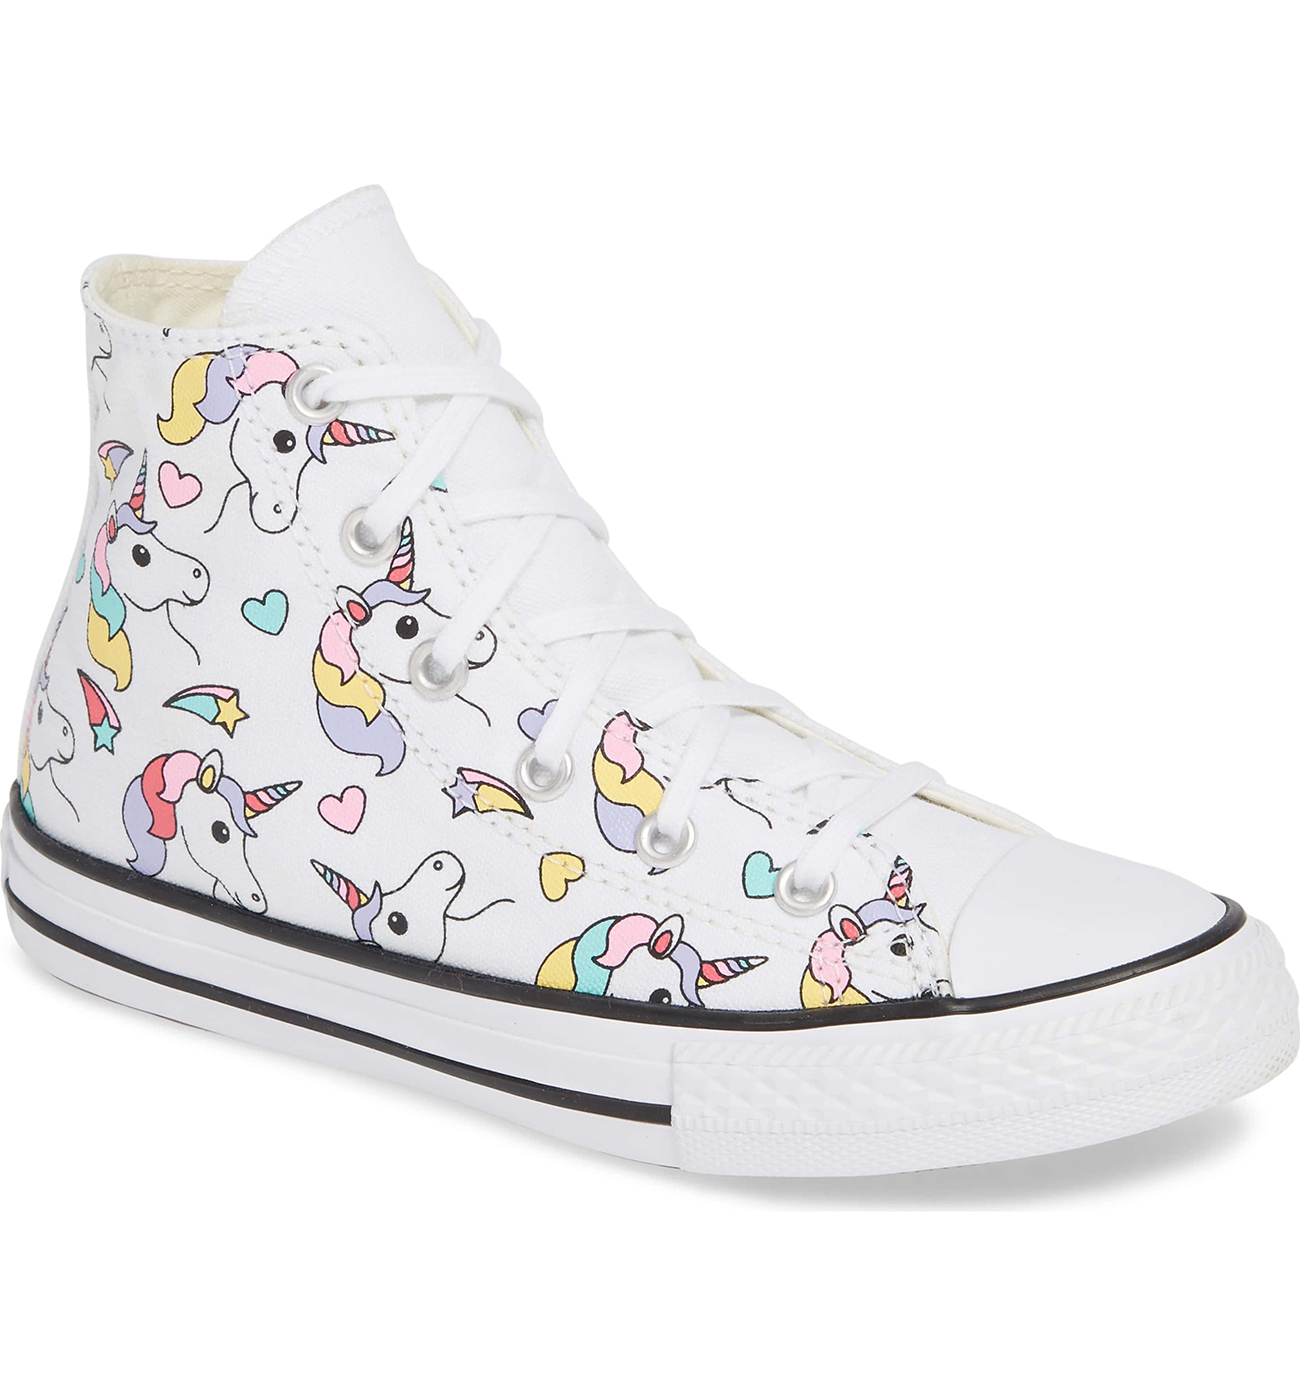 Sweet Unicorn High Top Sneakers by Converse